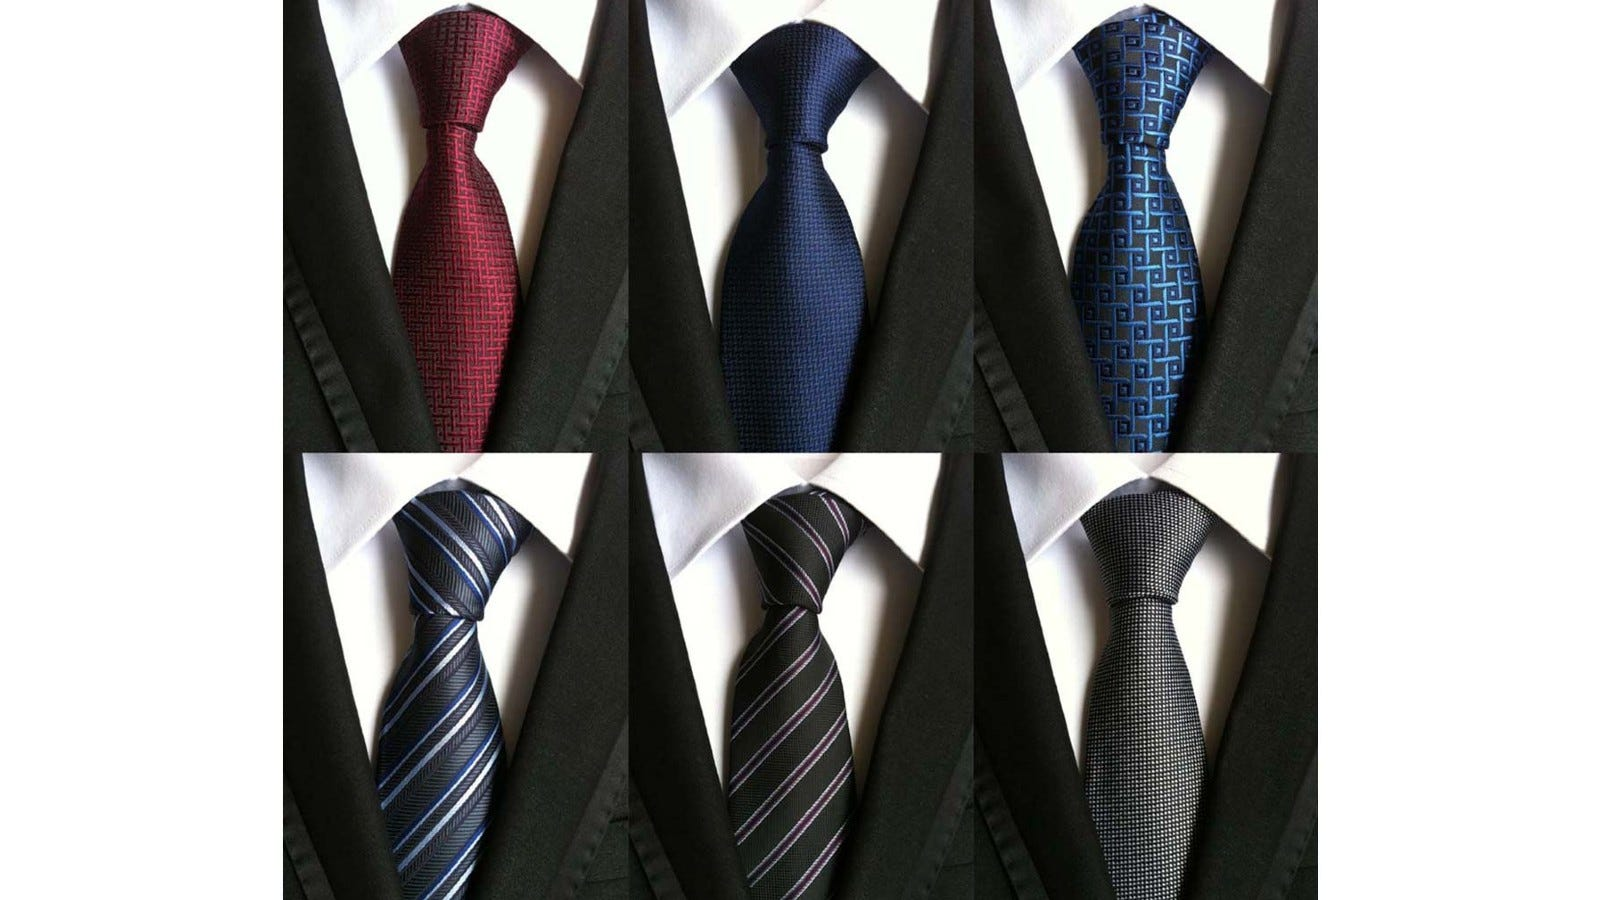 Six neckties featuring simple yet classic designs